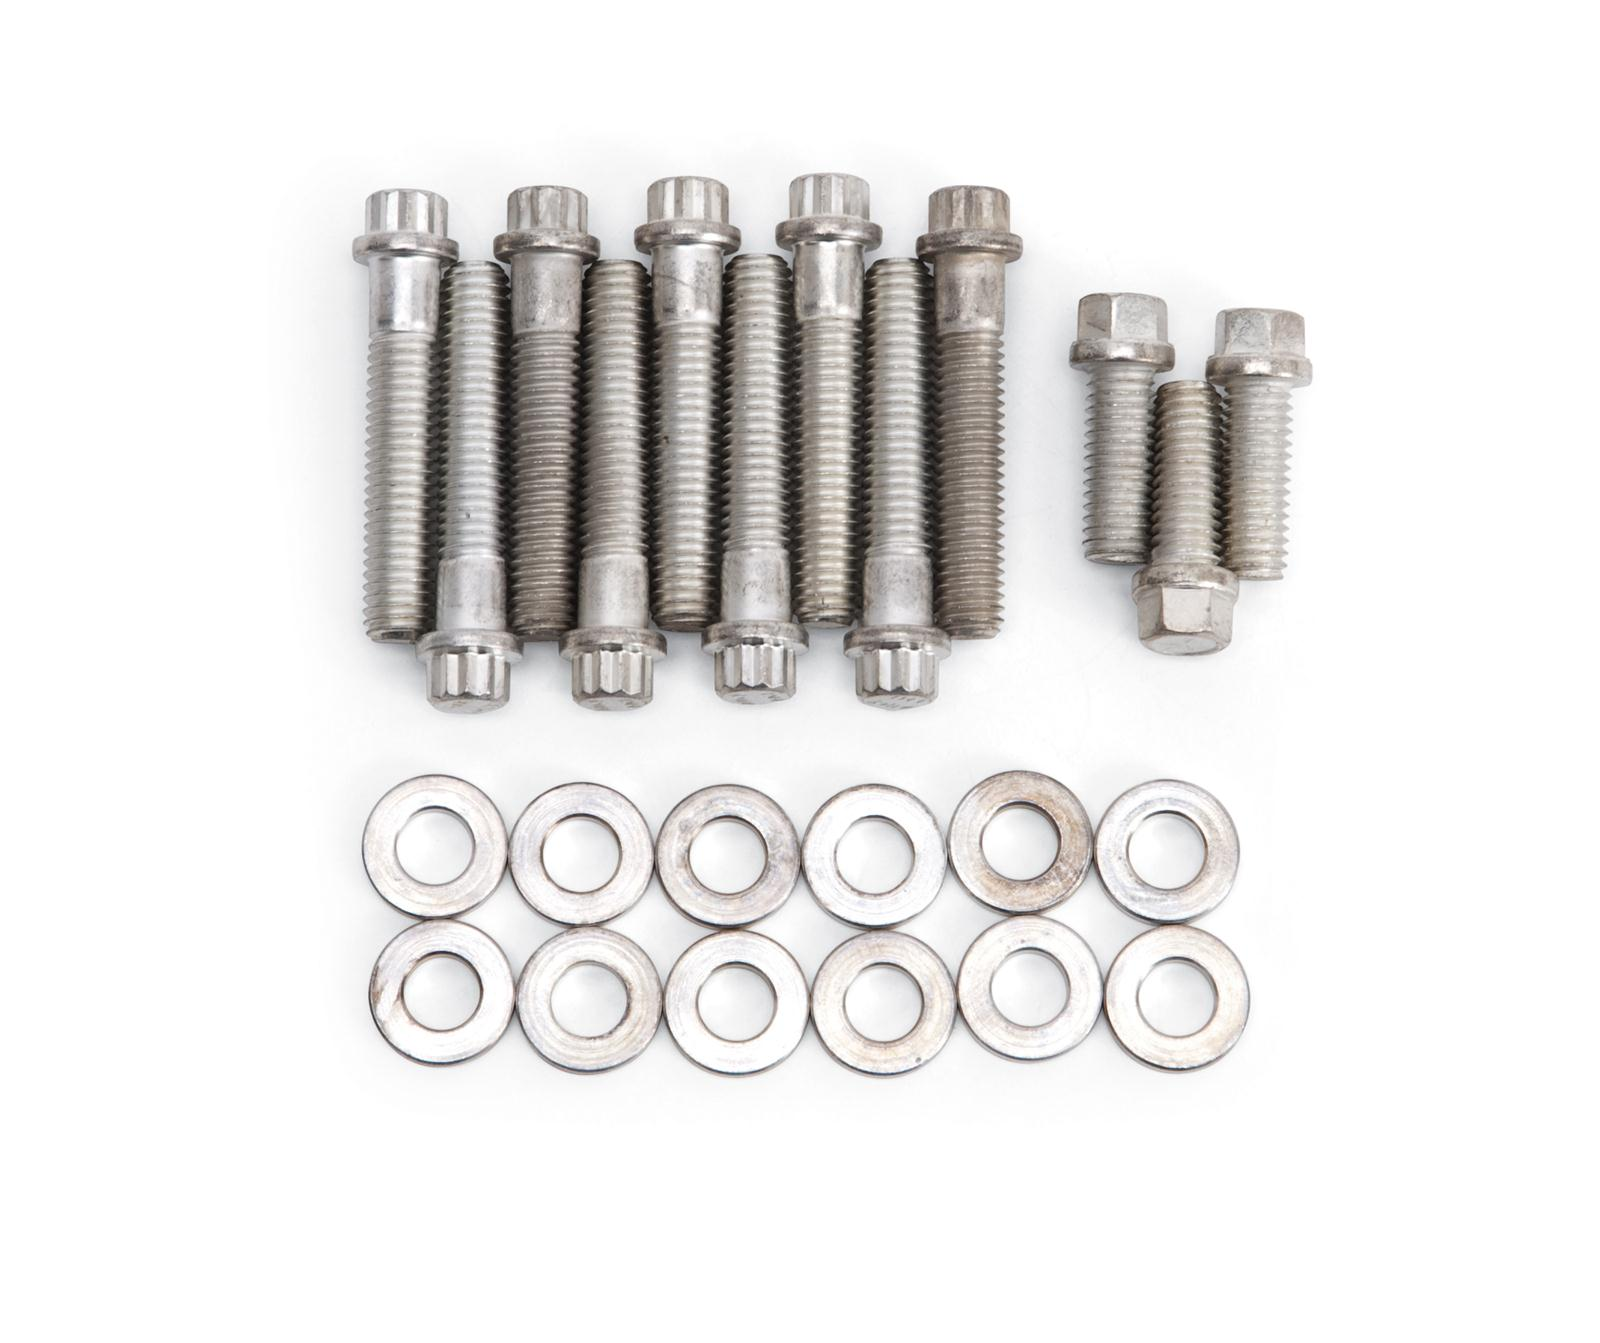 Oldsmobile 330-455 Stainless Steel Intake Manifold Bolt Kit NEW